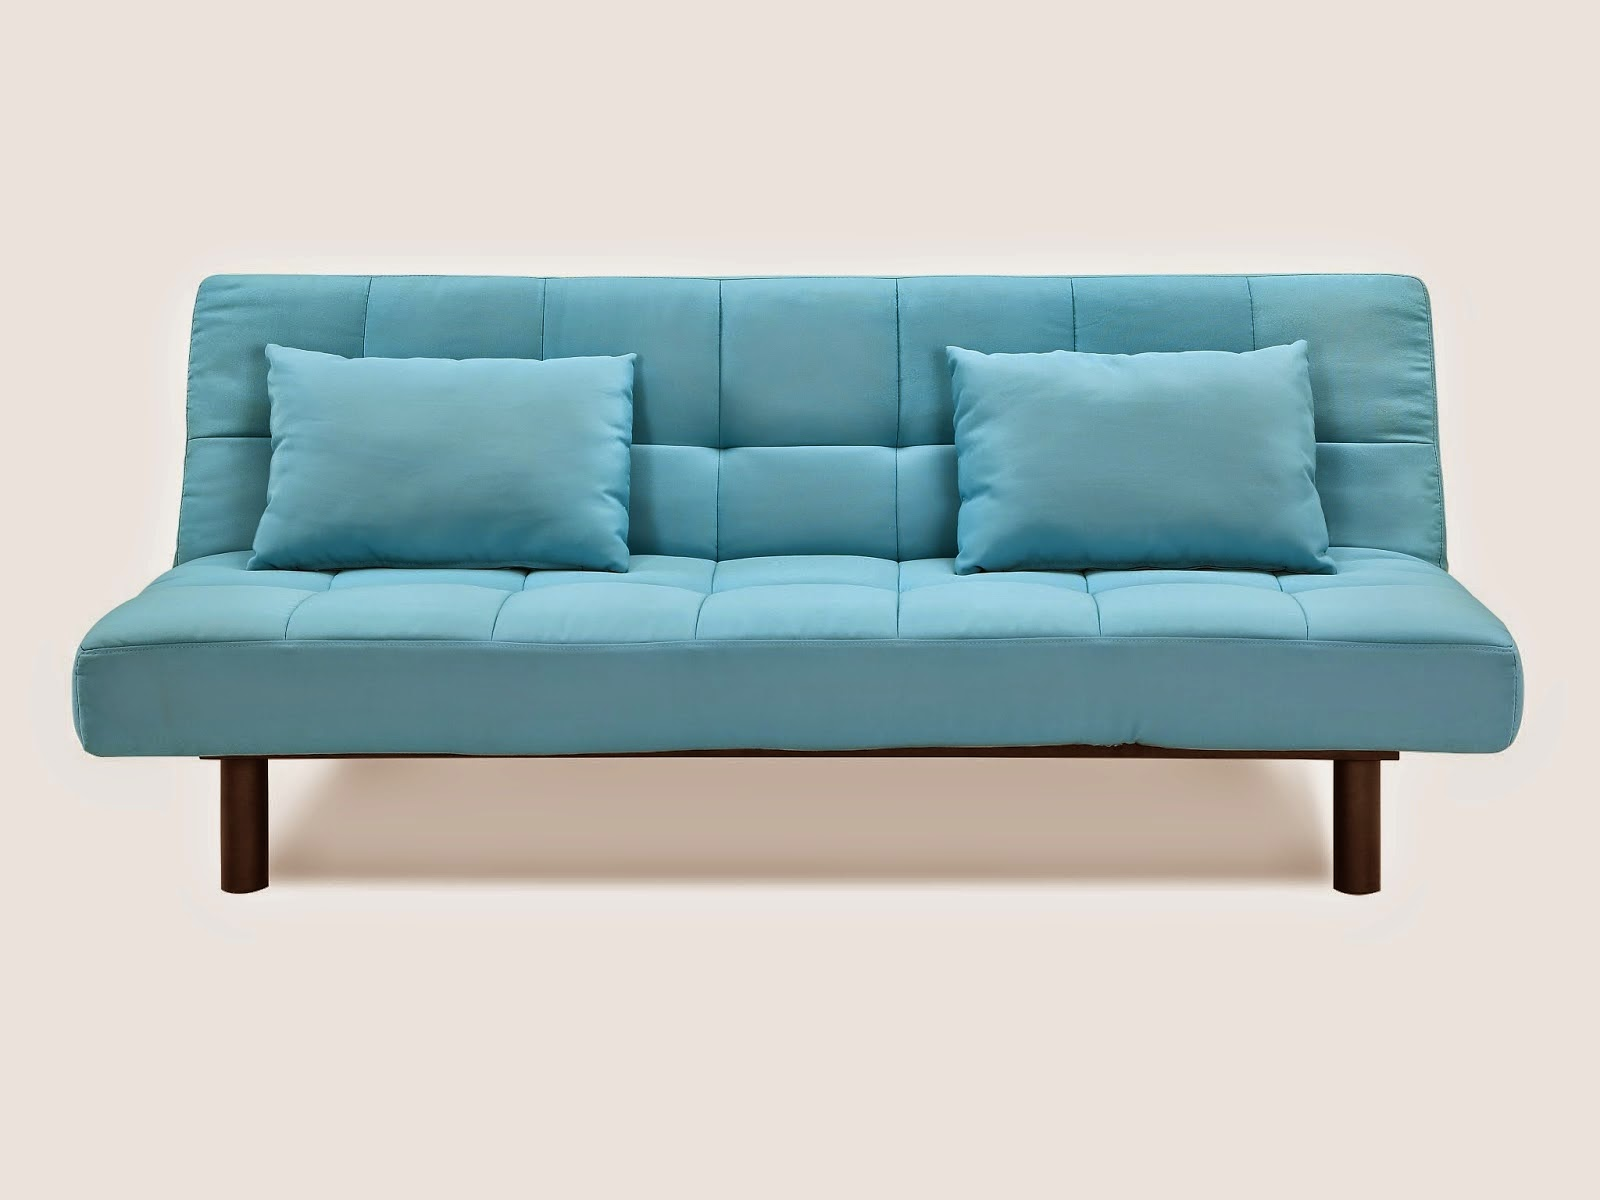 St Lucia Outdoor Sofabed Futon